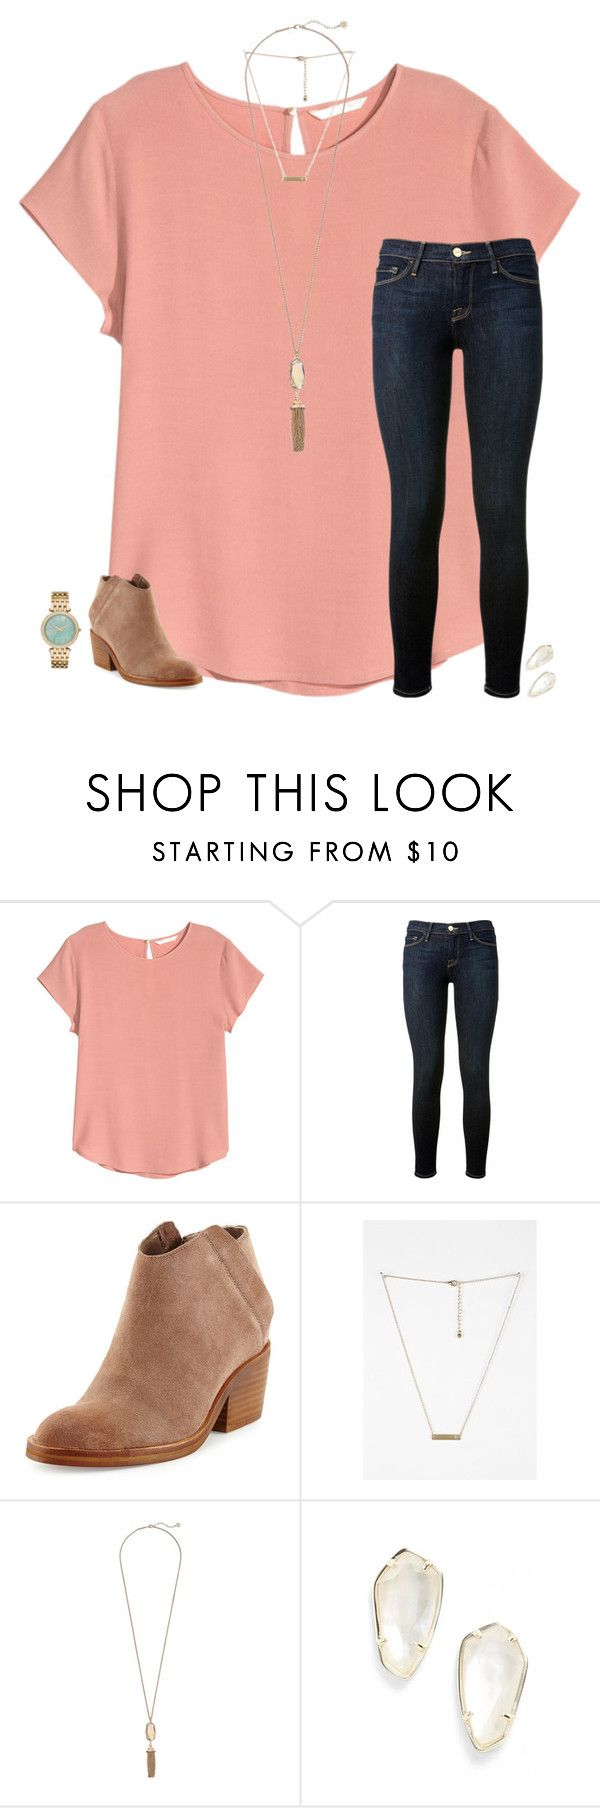 """more soccer today"" by secfashion13 ❤ liked on Polyvore featuring H&M, Frame Denim, Dolce Vita, Kendra Scott and Michael Kors"